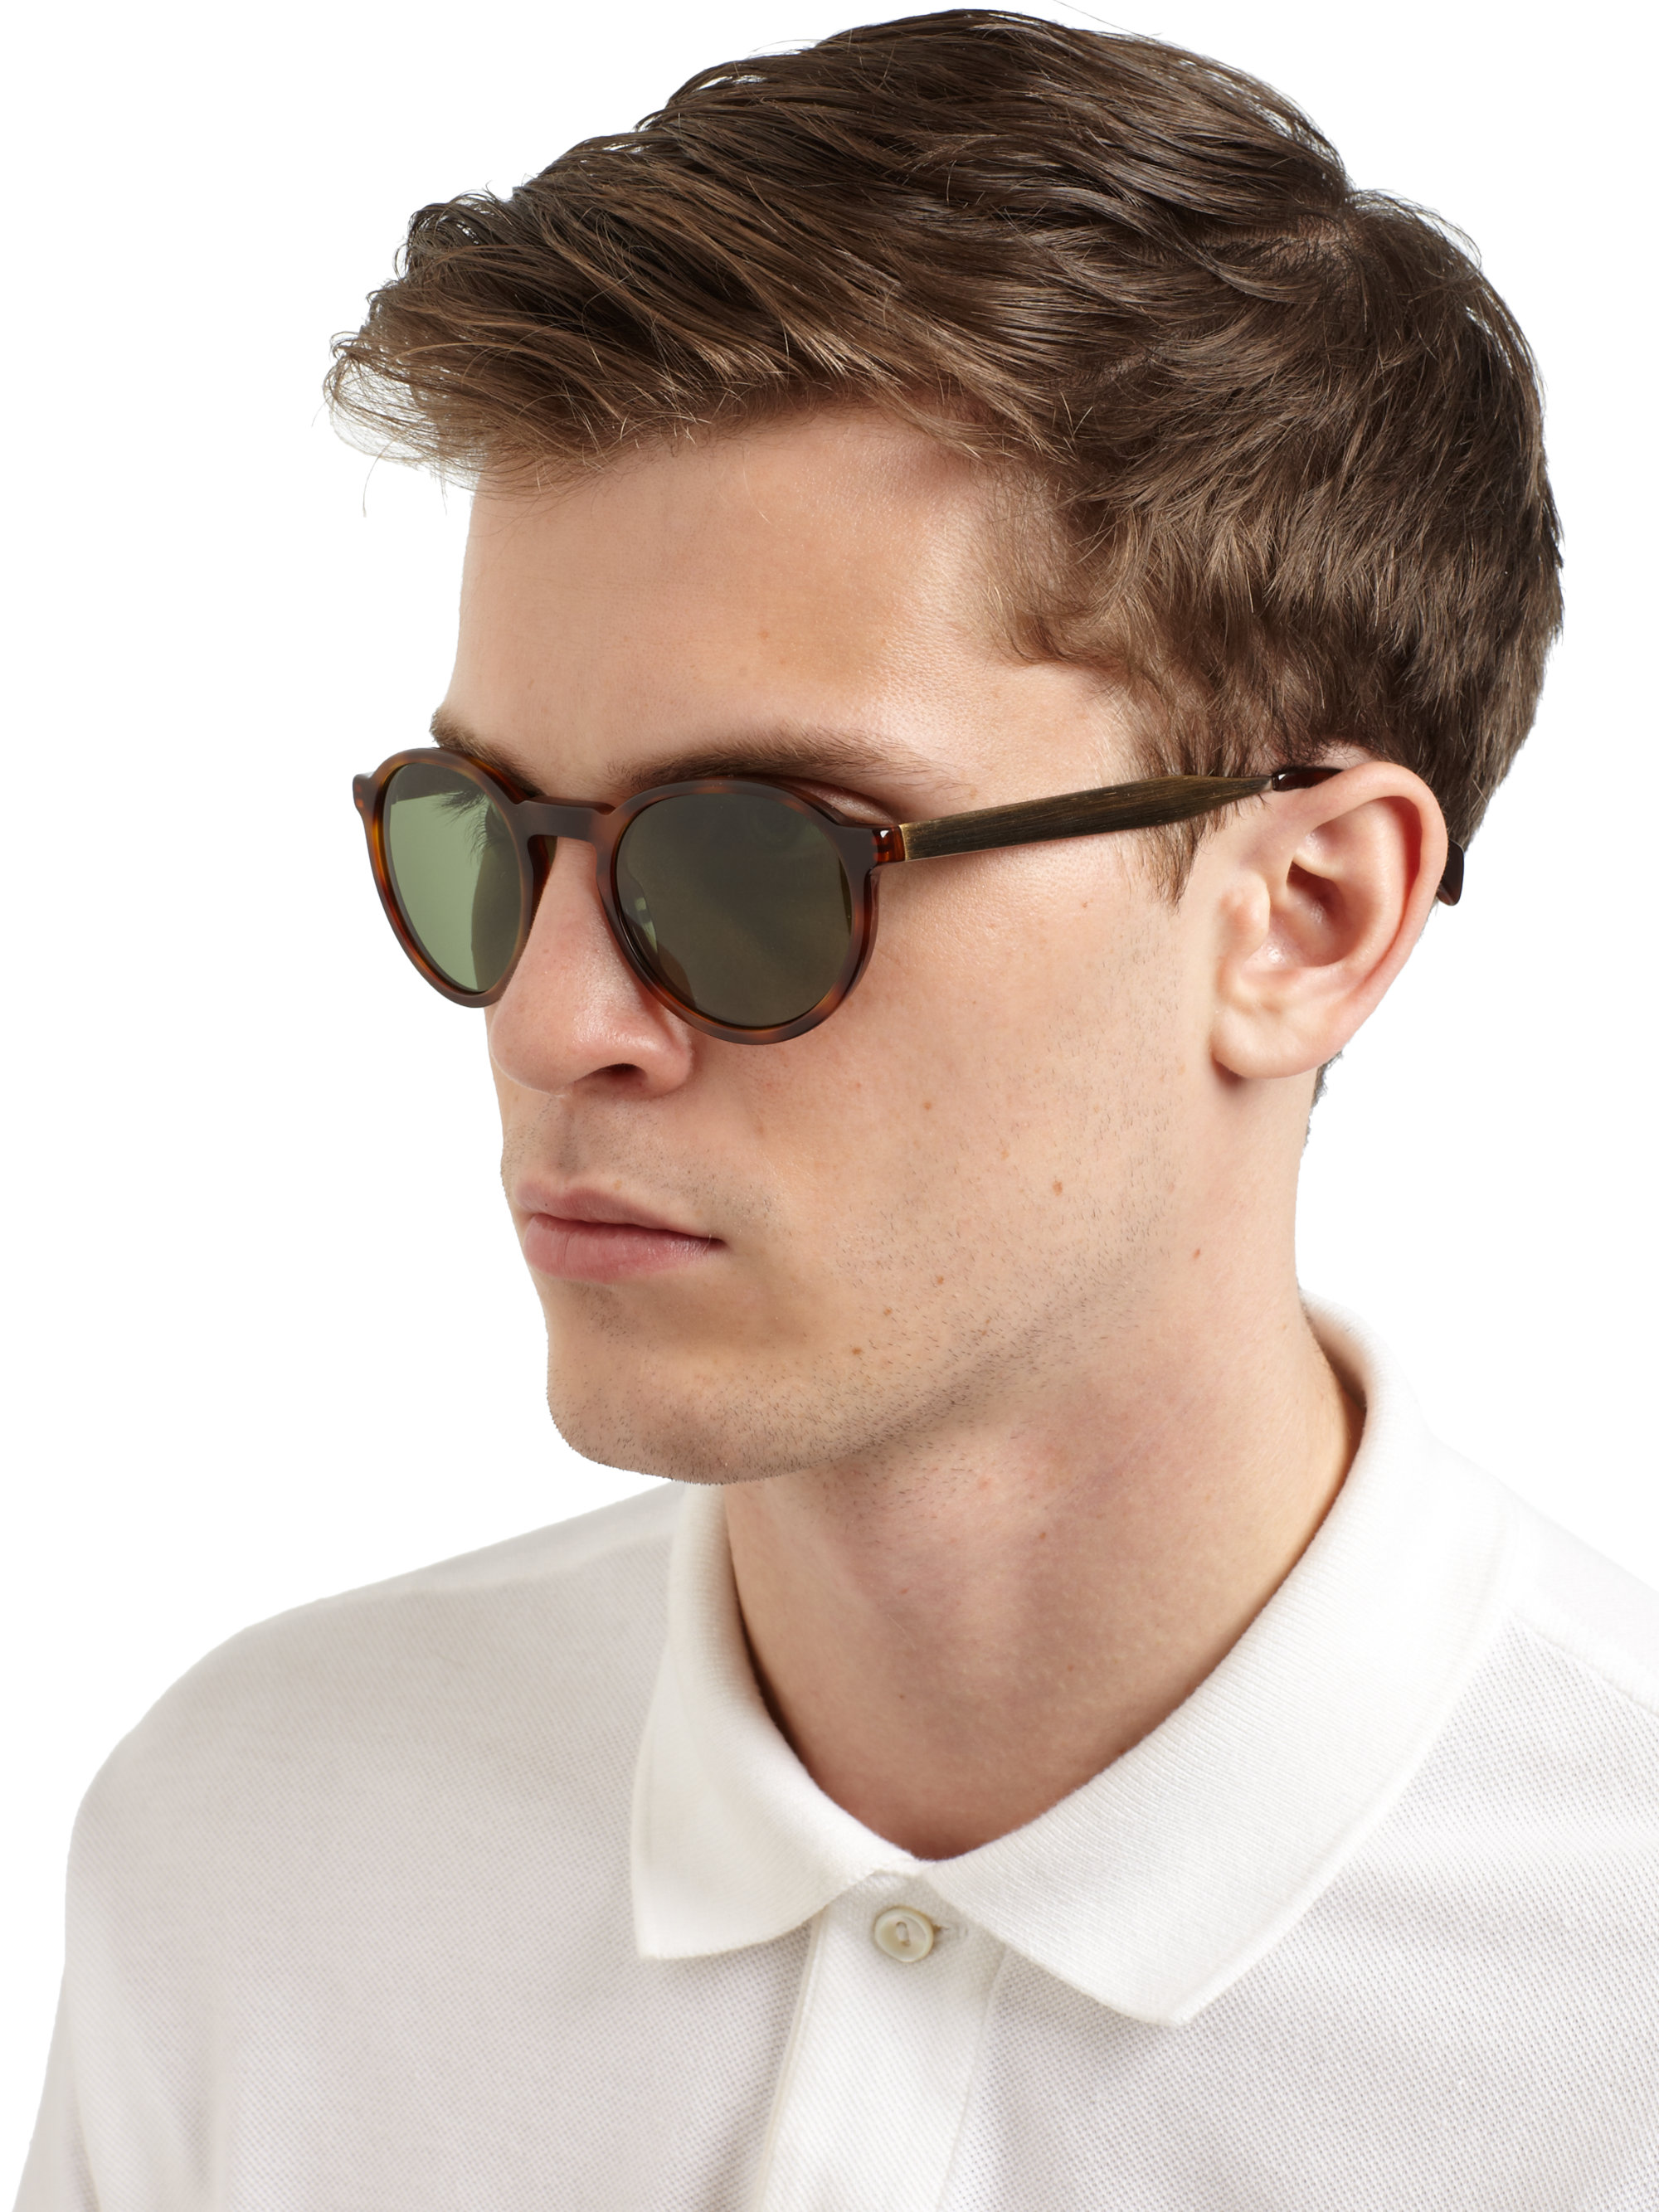 60b4848a3f3a6 Paul Smith Elson Round Sunglasses in Green - Lyst